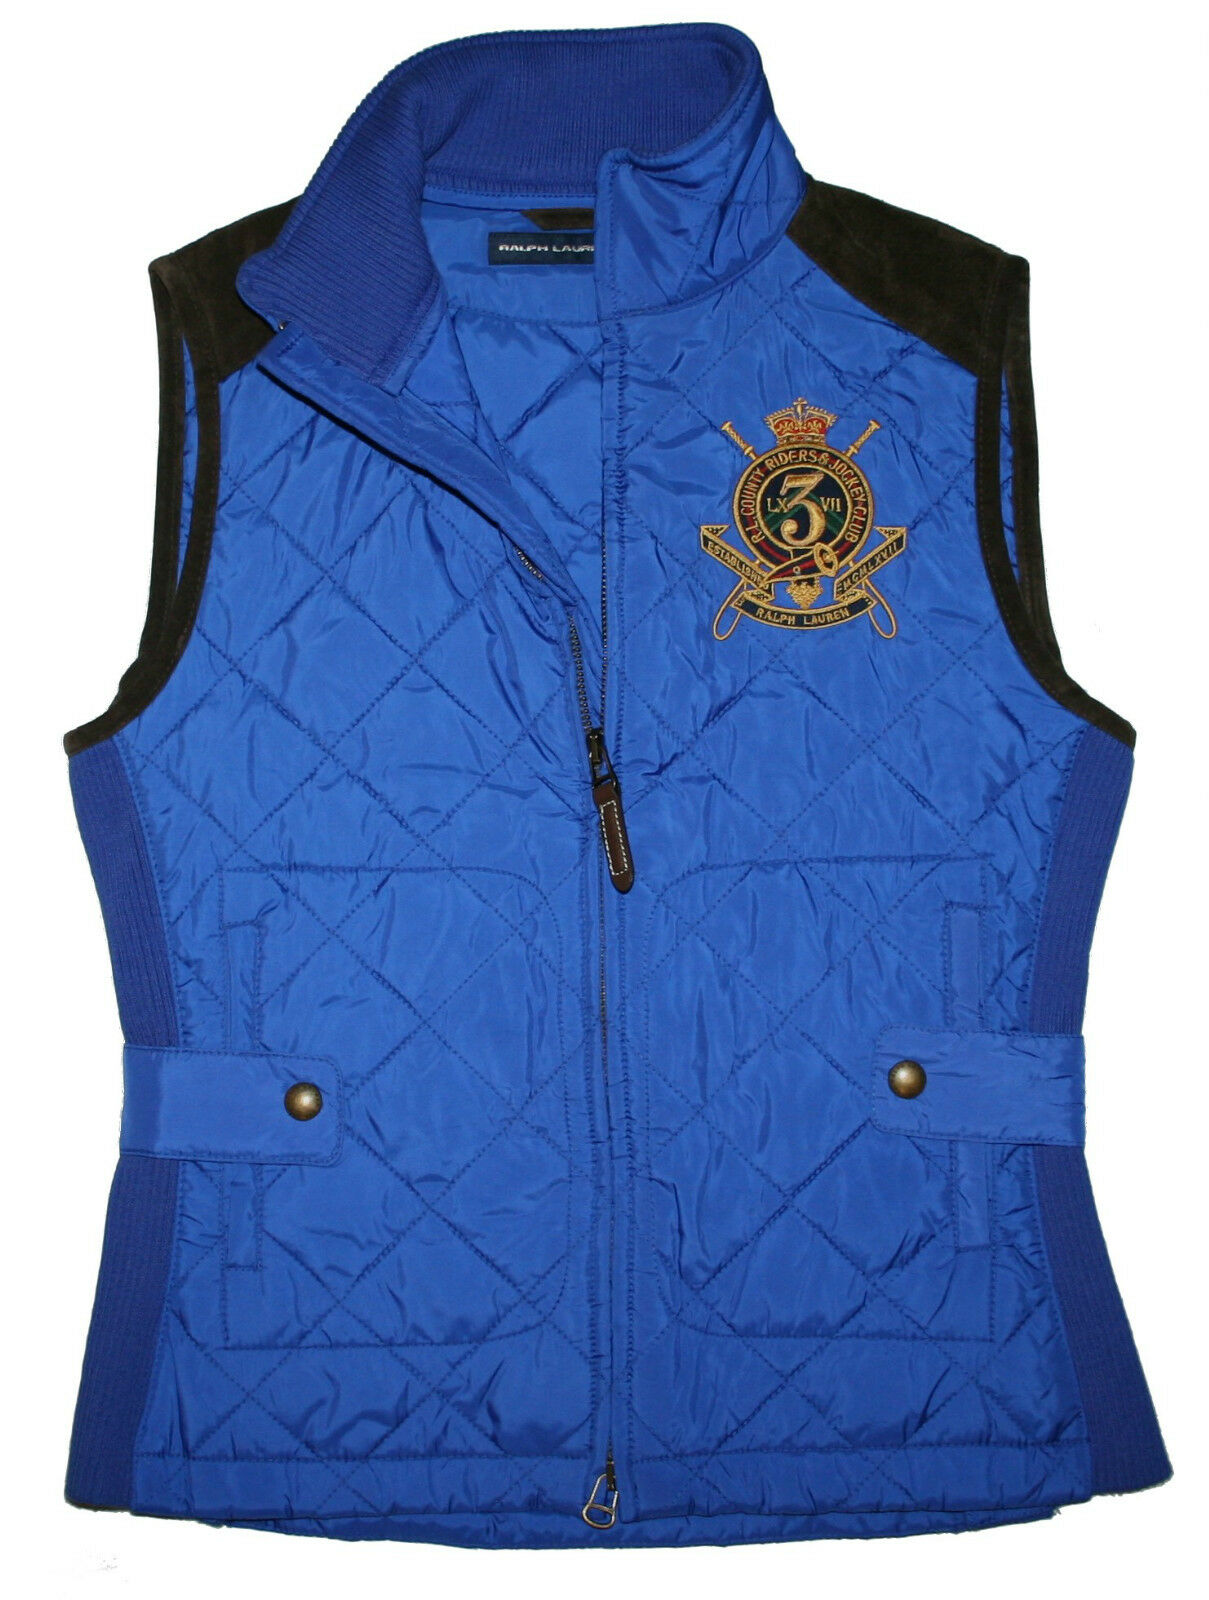 Exclusive Polo Ralph Lauren Circuit Hunting Ladies Quilted Vest SIZE S